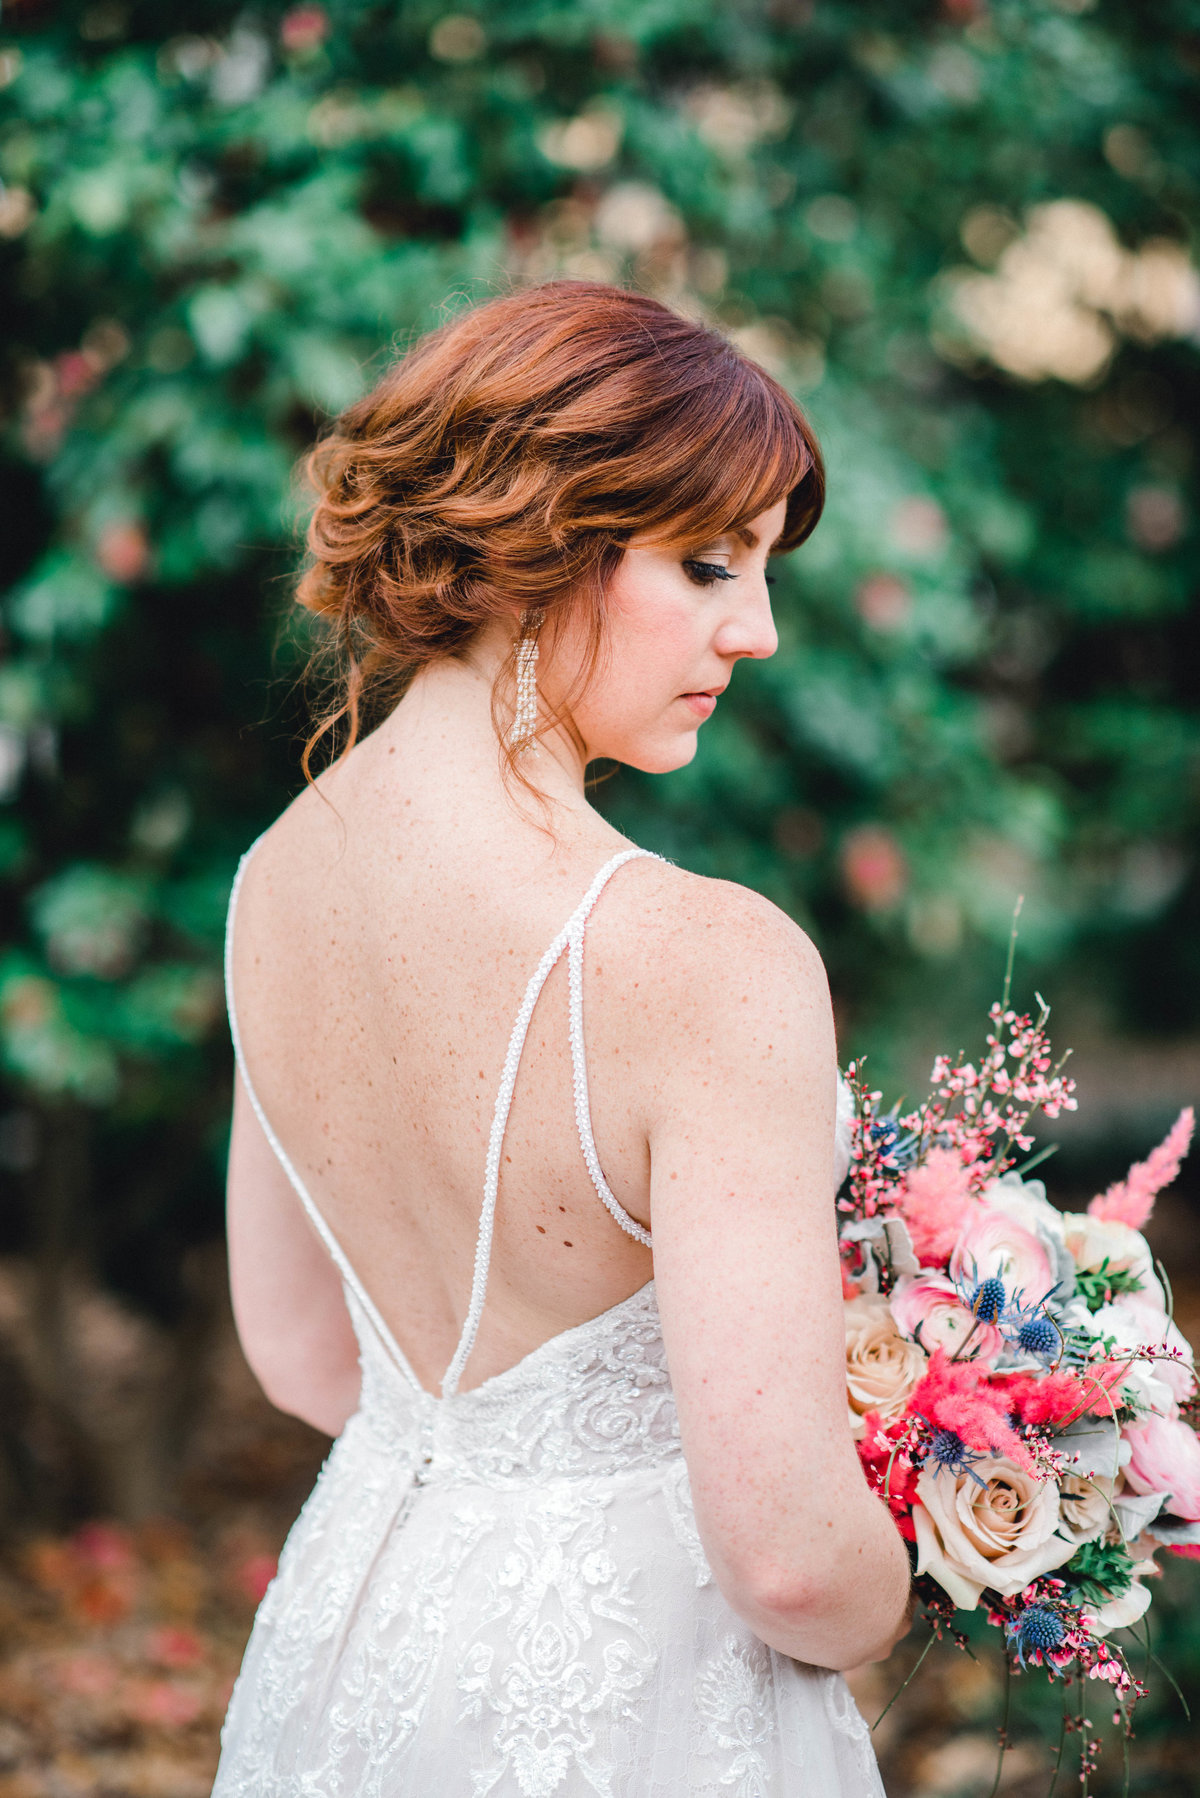 Wright Square Bleu Belle Bridal Gown